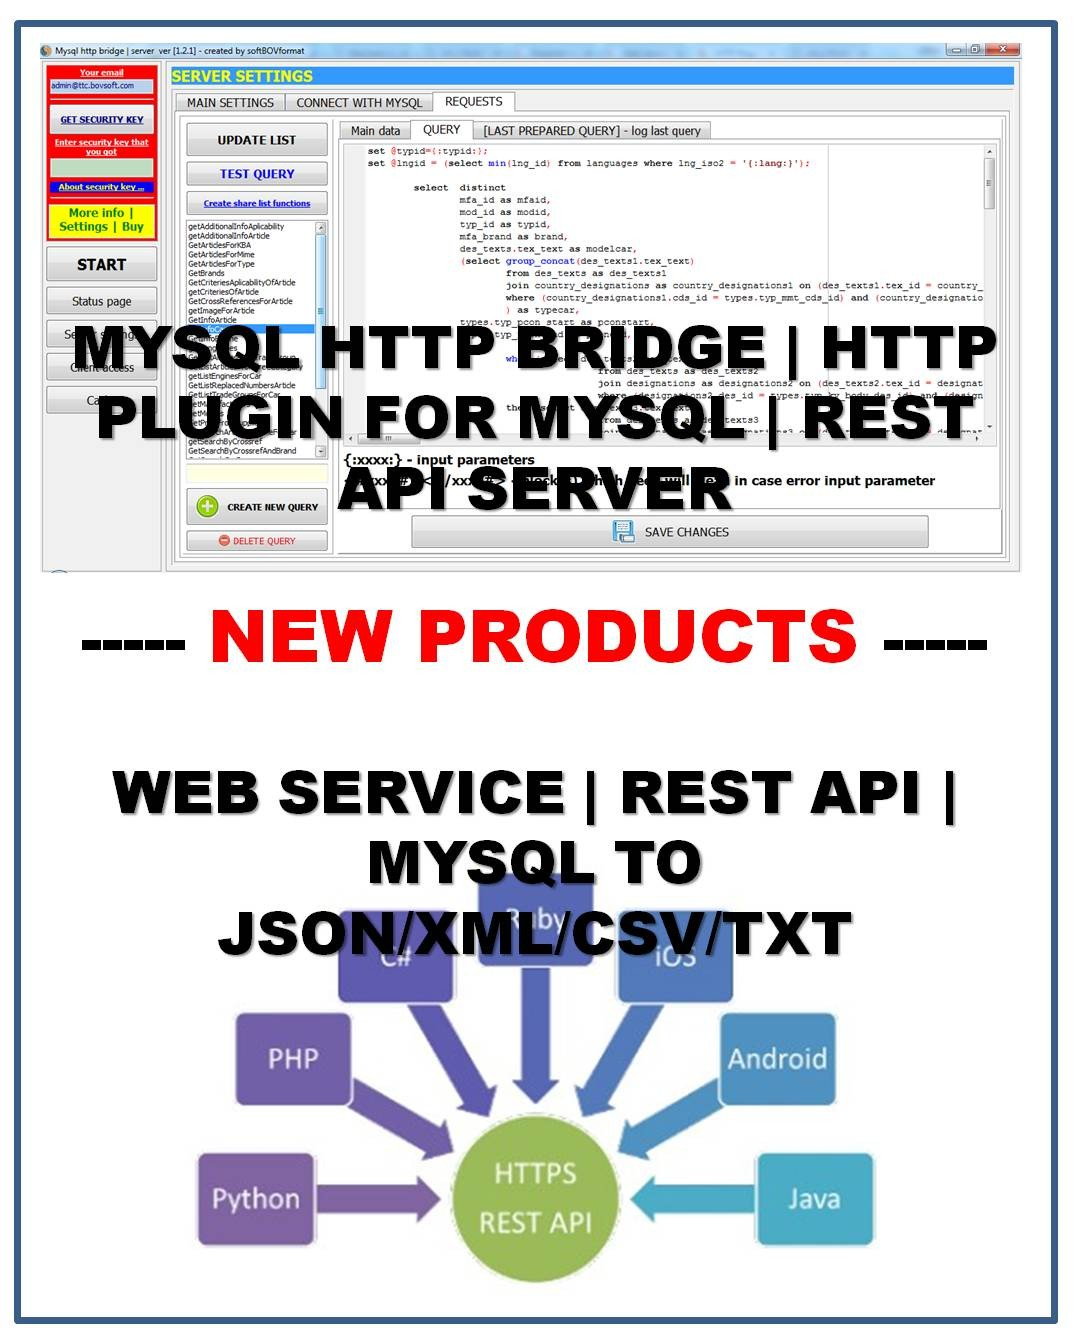 WEB-SERVER | MYSQL HTTP BRIDGE